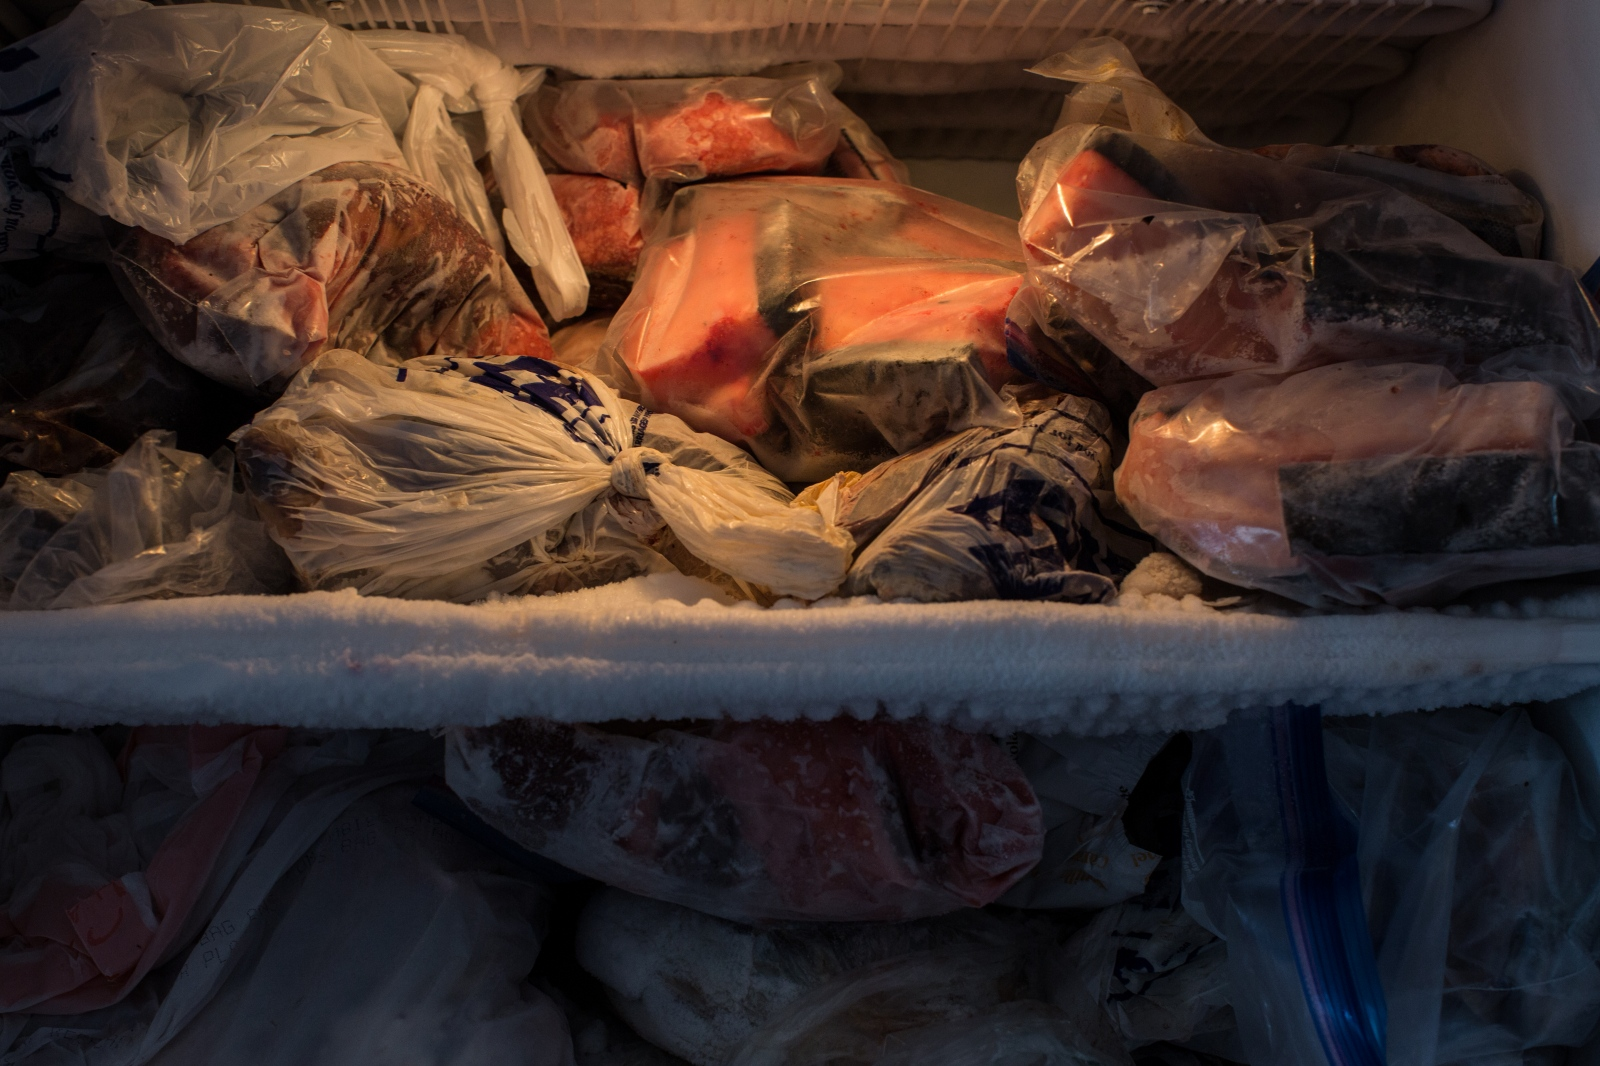 The freezer in the Apassingok home, filled with mungtuk (whale blubber), and other meats.